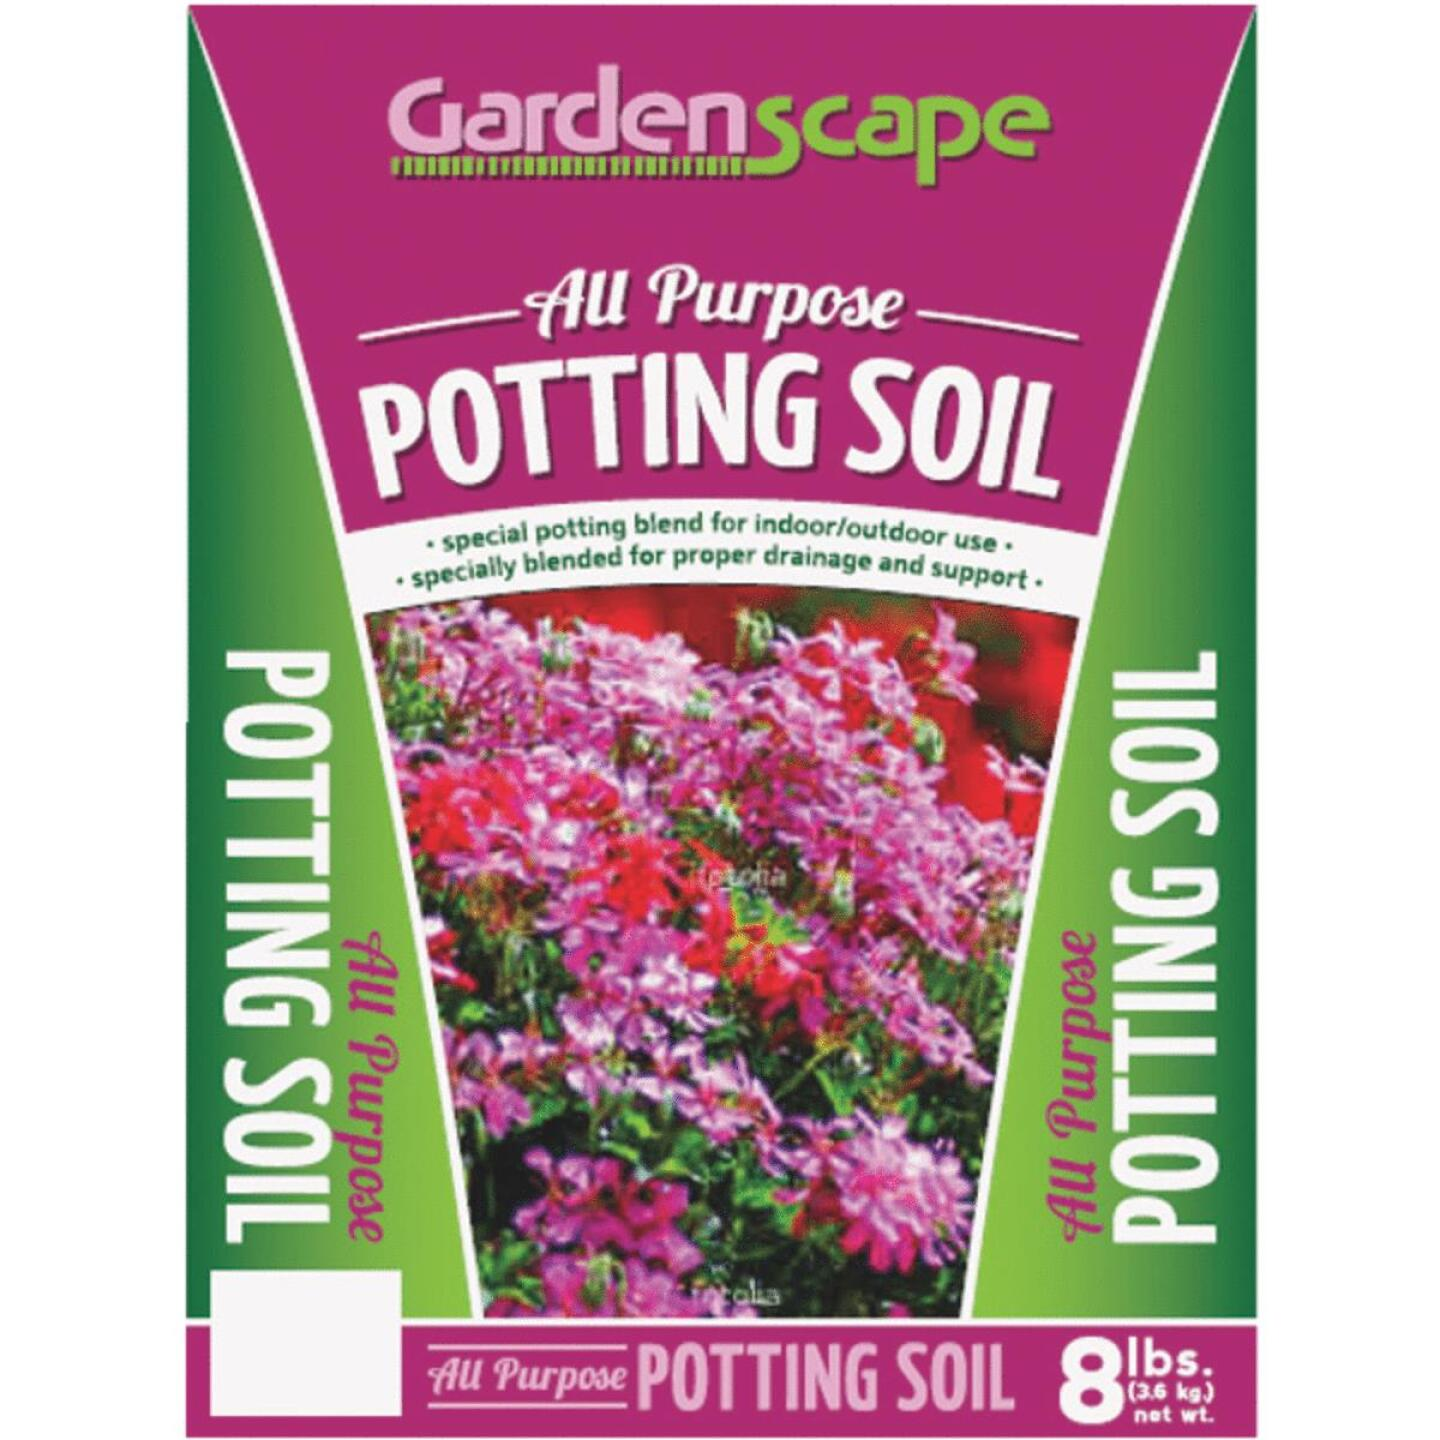 Gardenscape 8 Lb. All Purpose Indoor & Outdoor Potting Soil Image 1